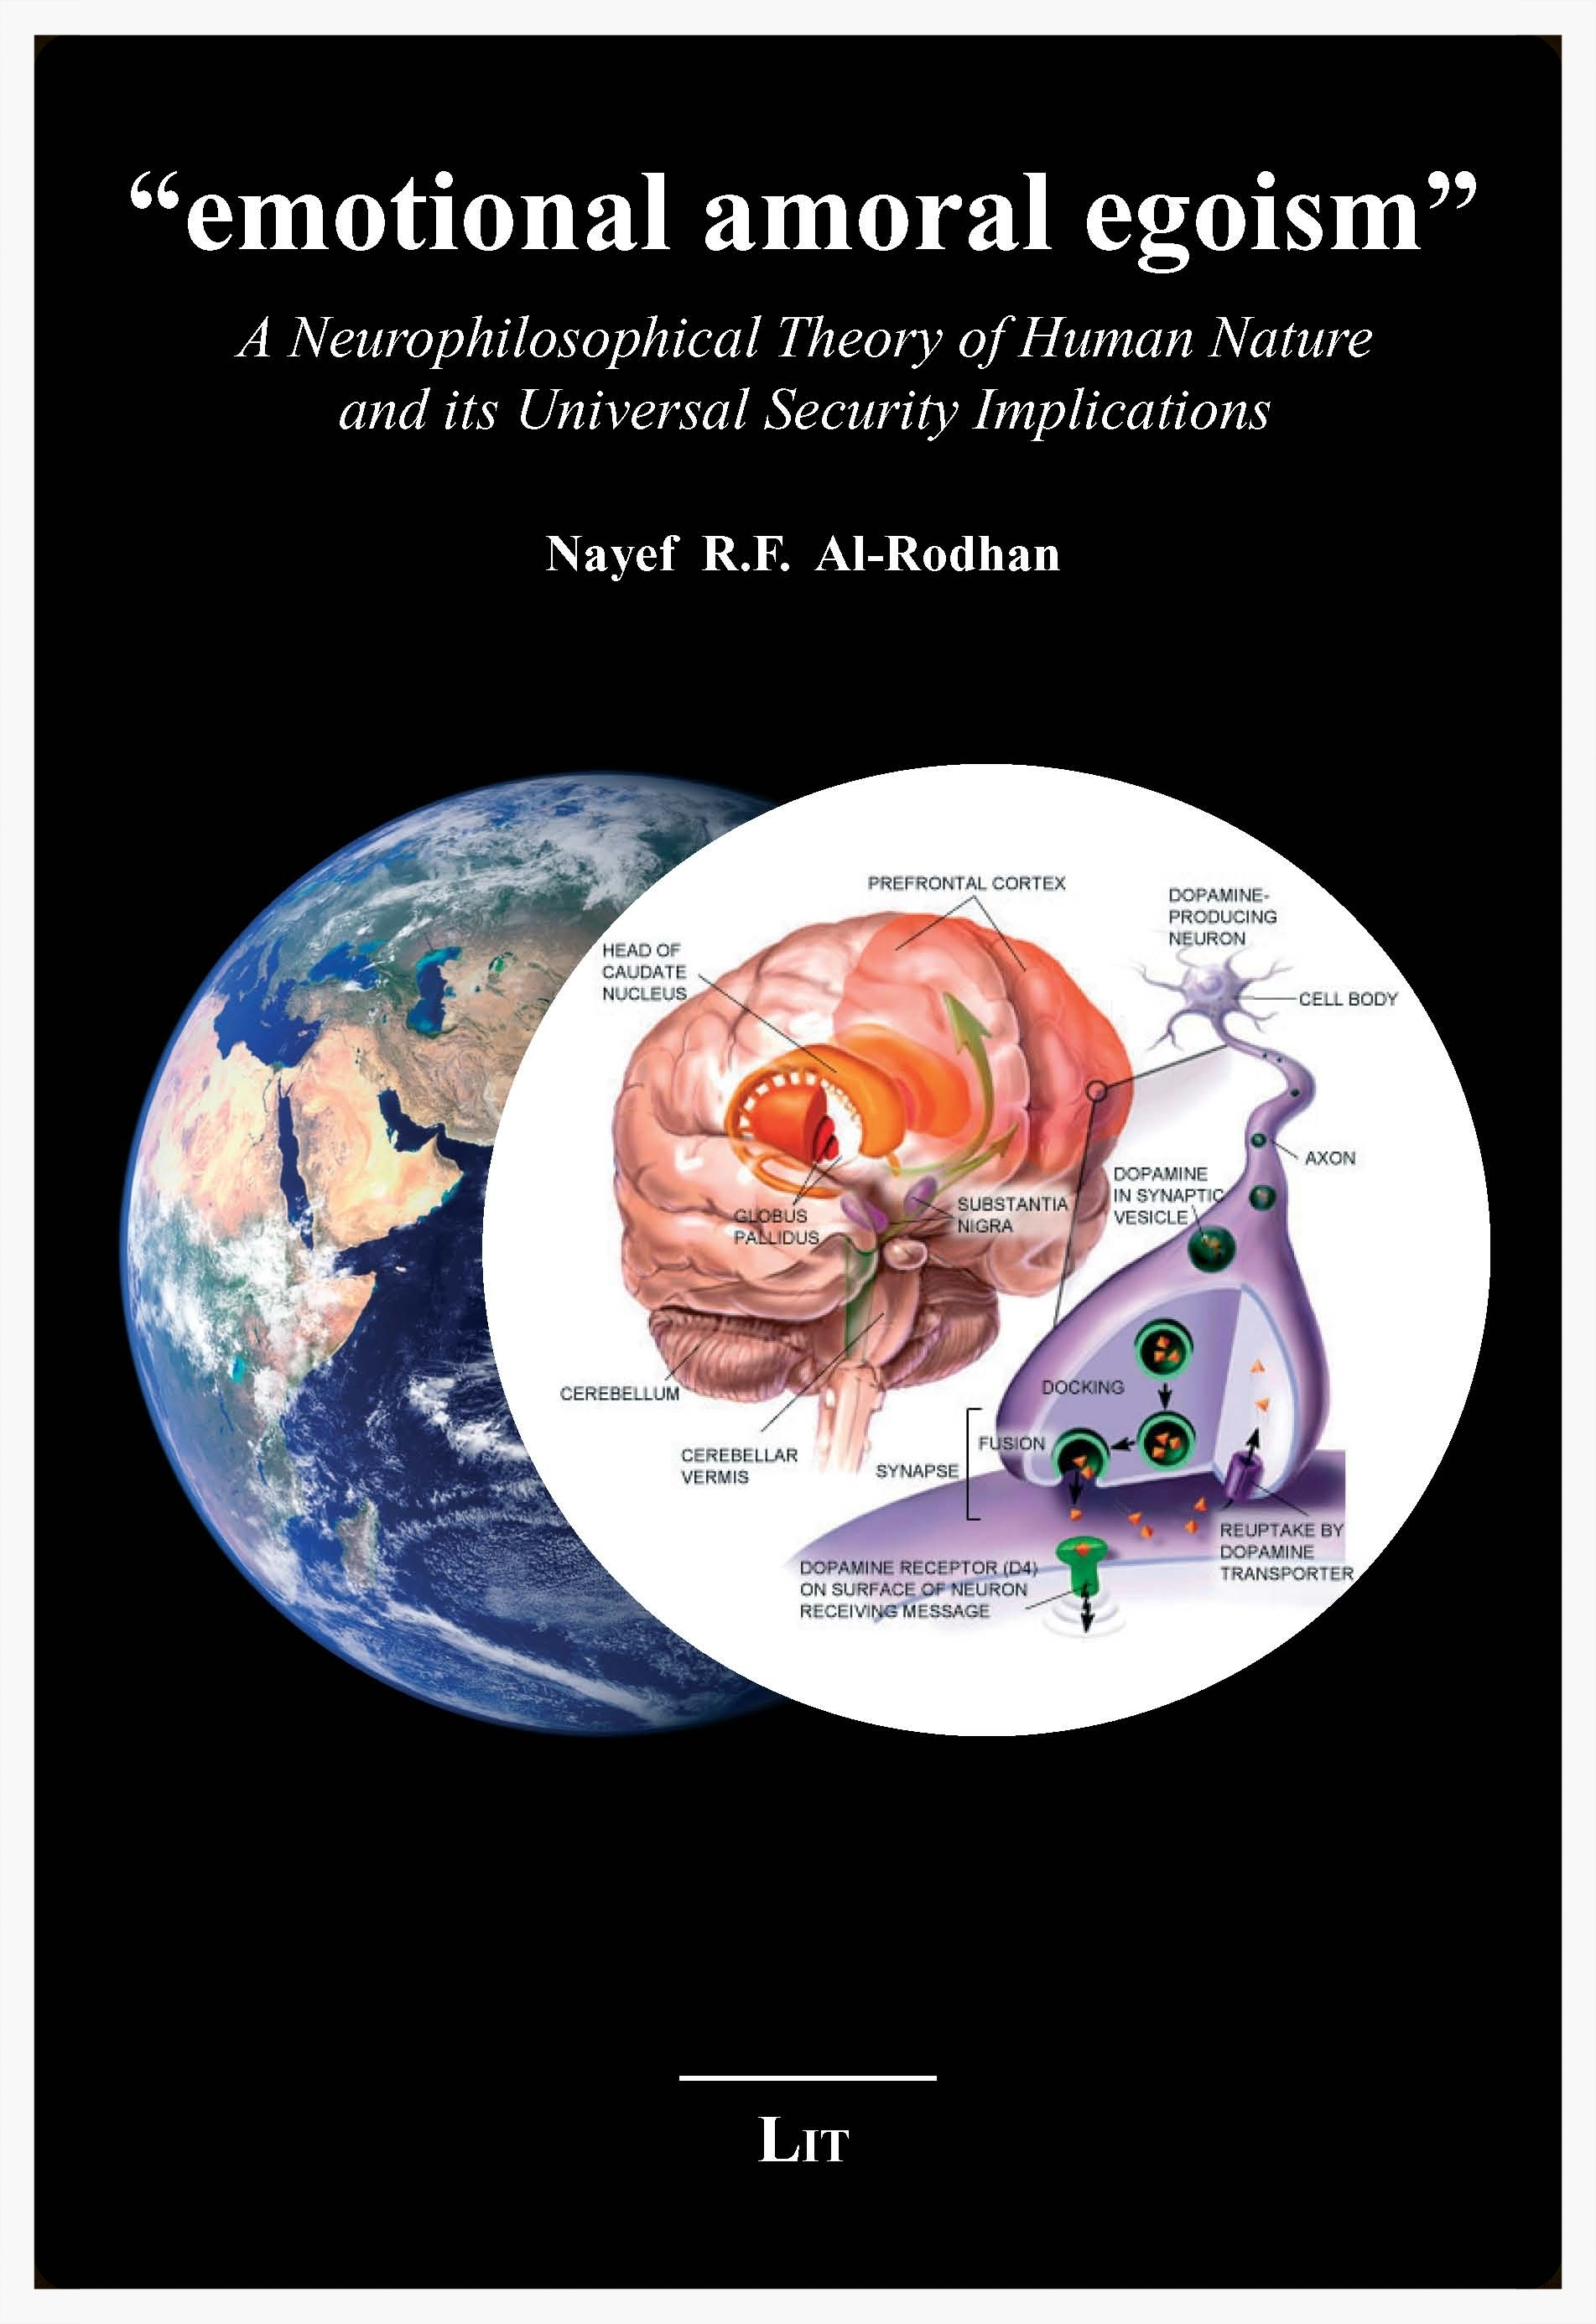 """EMOTIONAL AMORAL EGOISM"": A Neurophilosophical Theory of Human Nature and its Universal Security Implications"